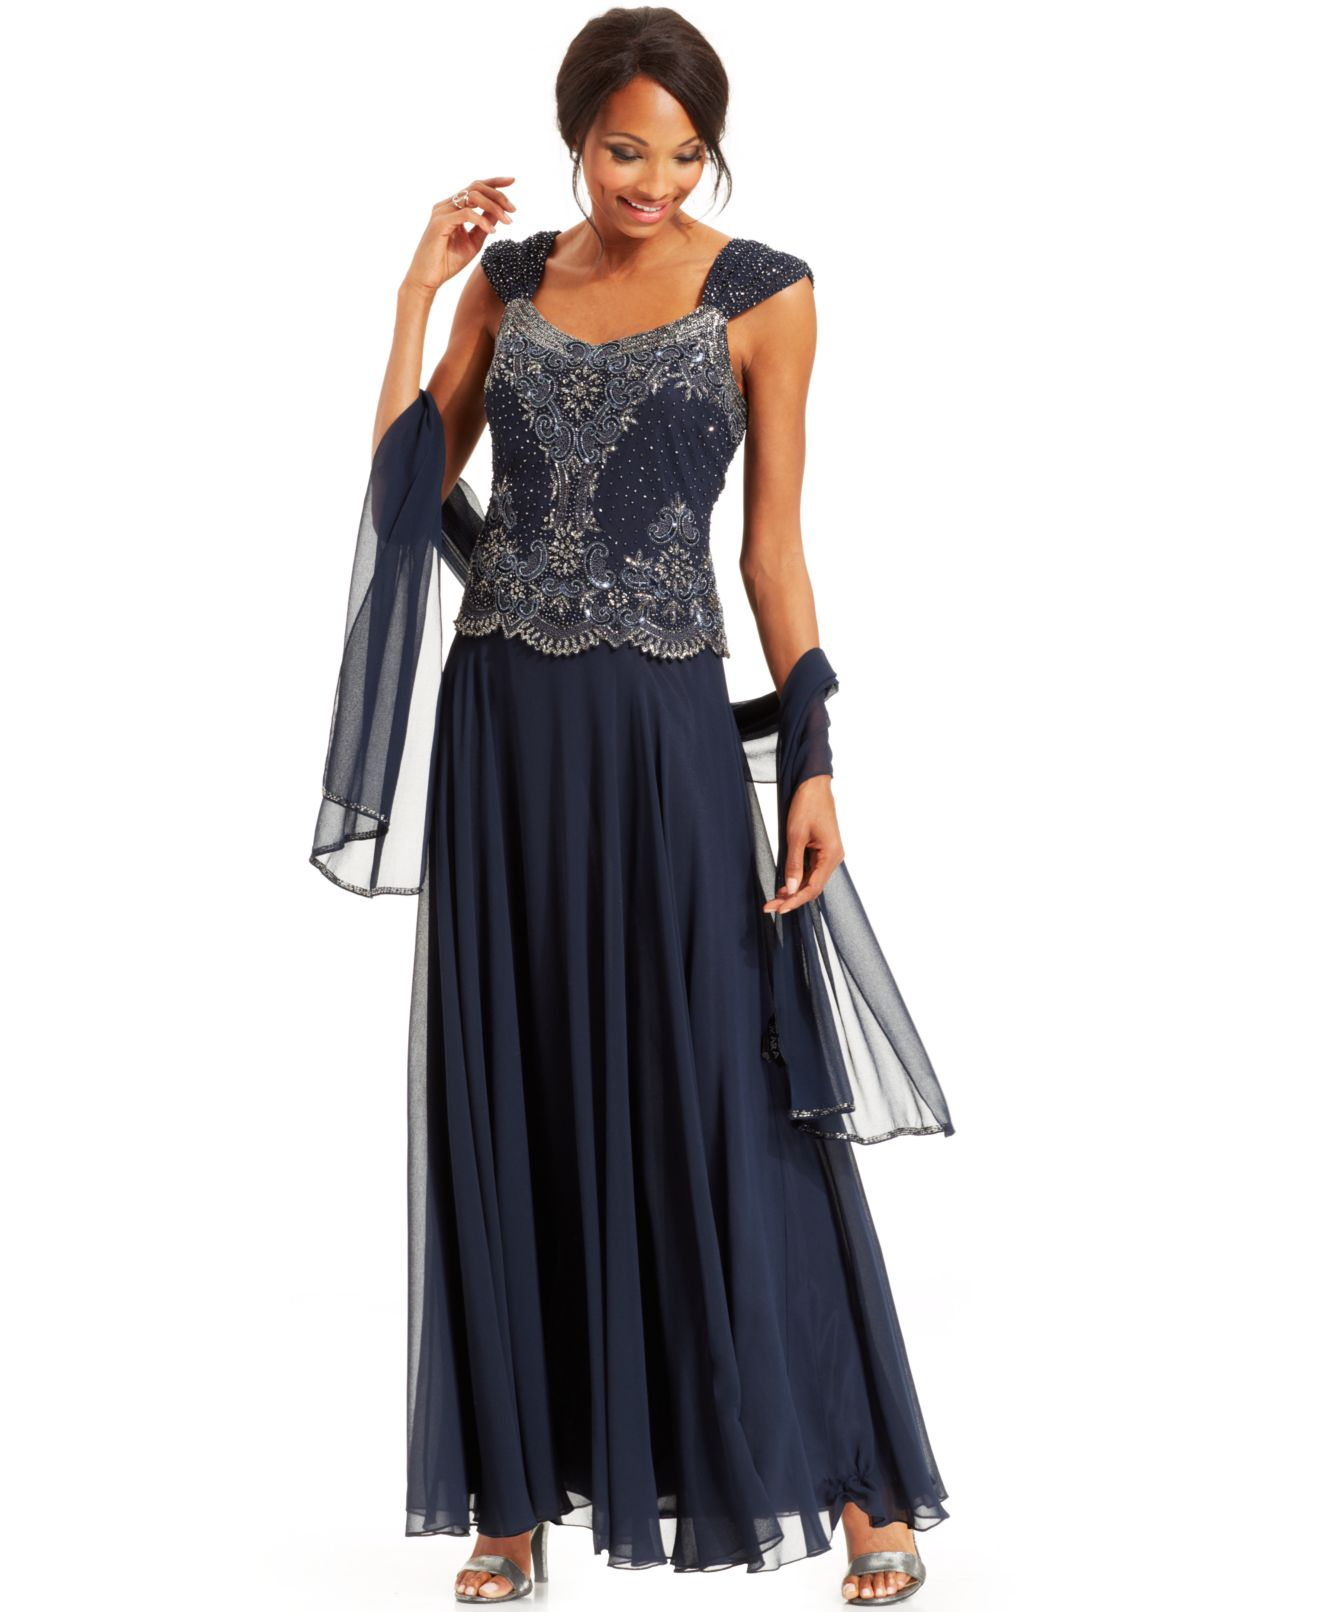 j kara plus size evening dresses photo - 1